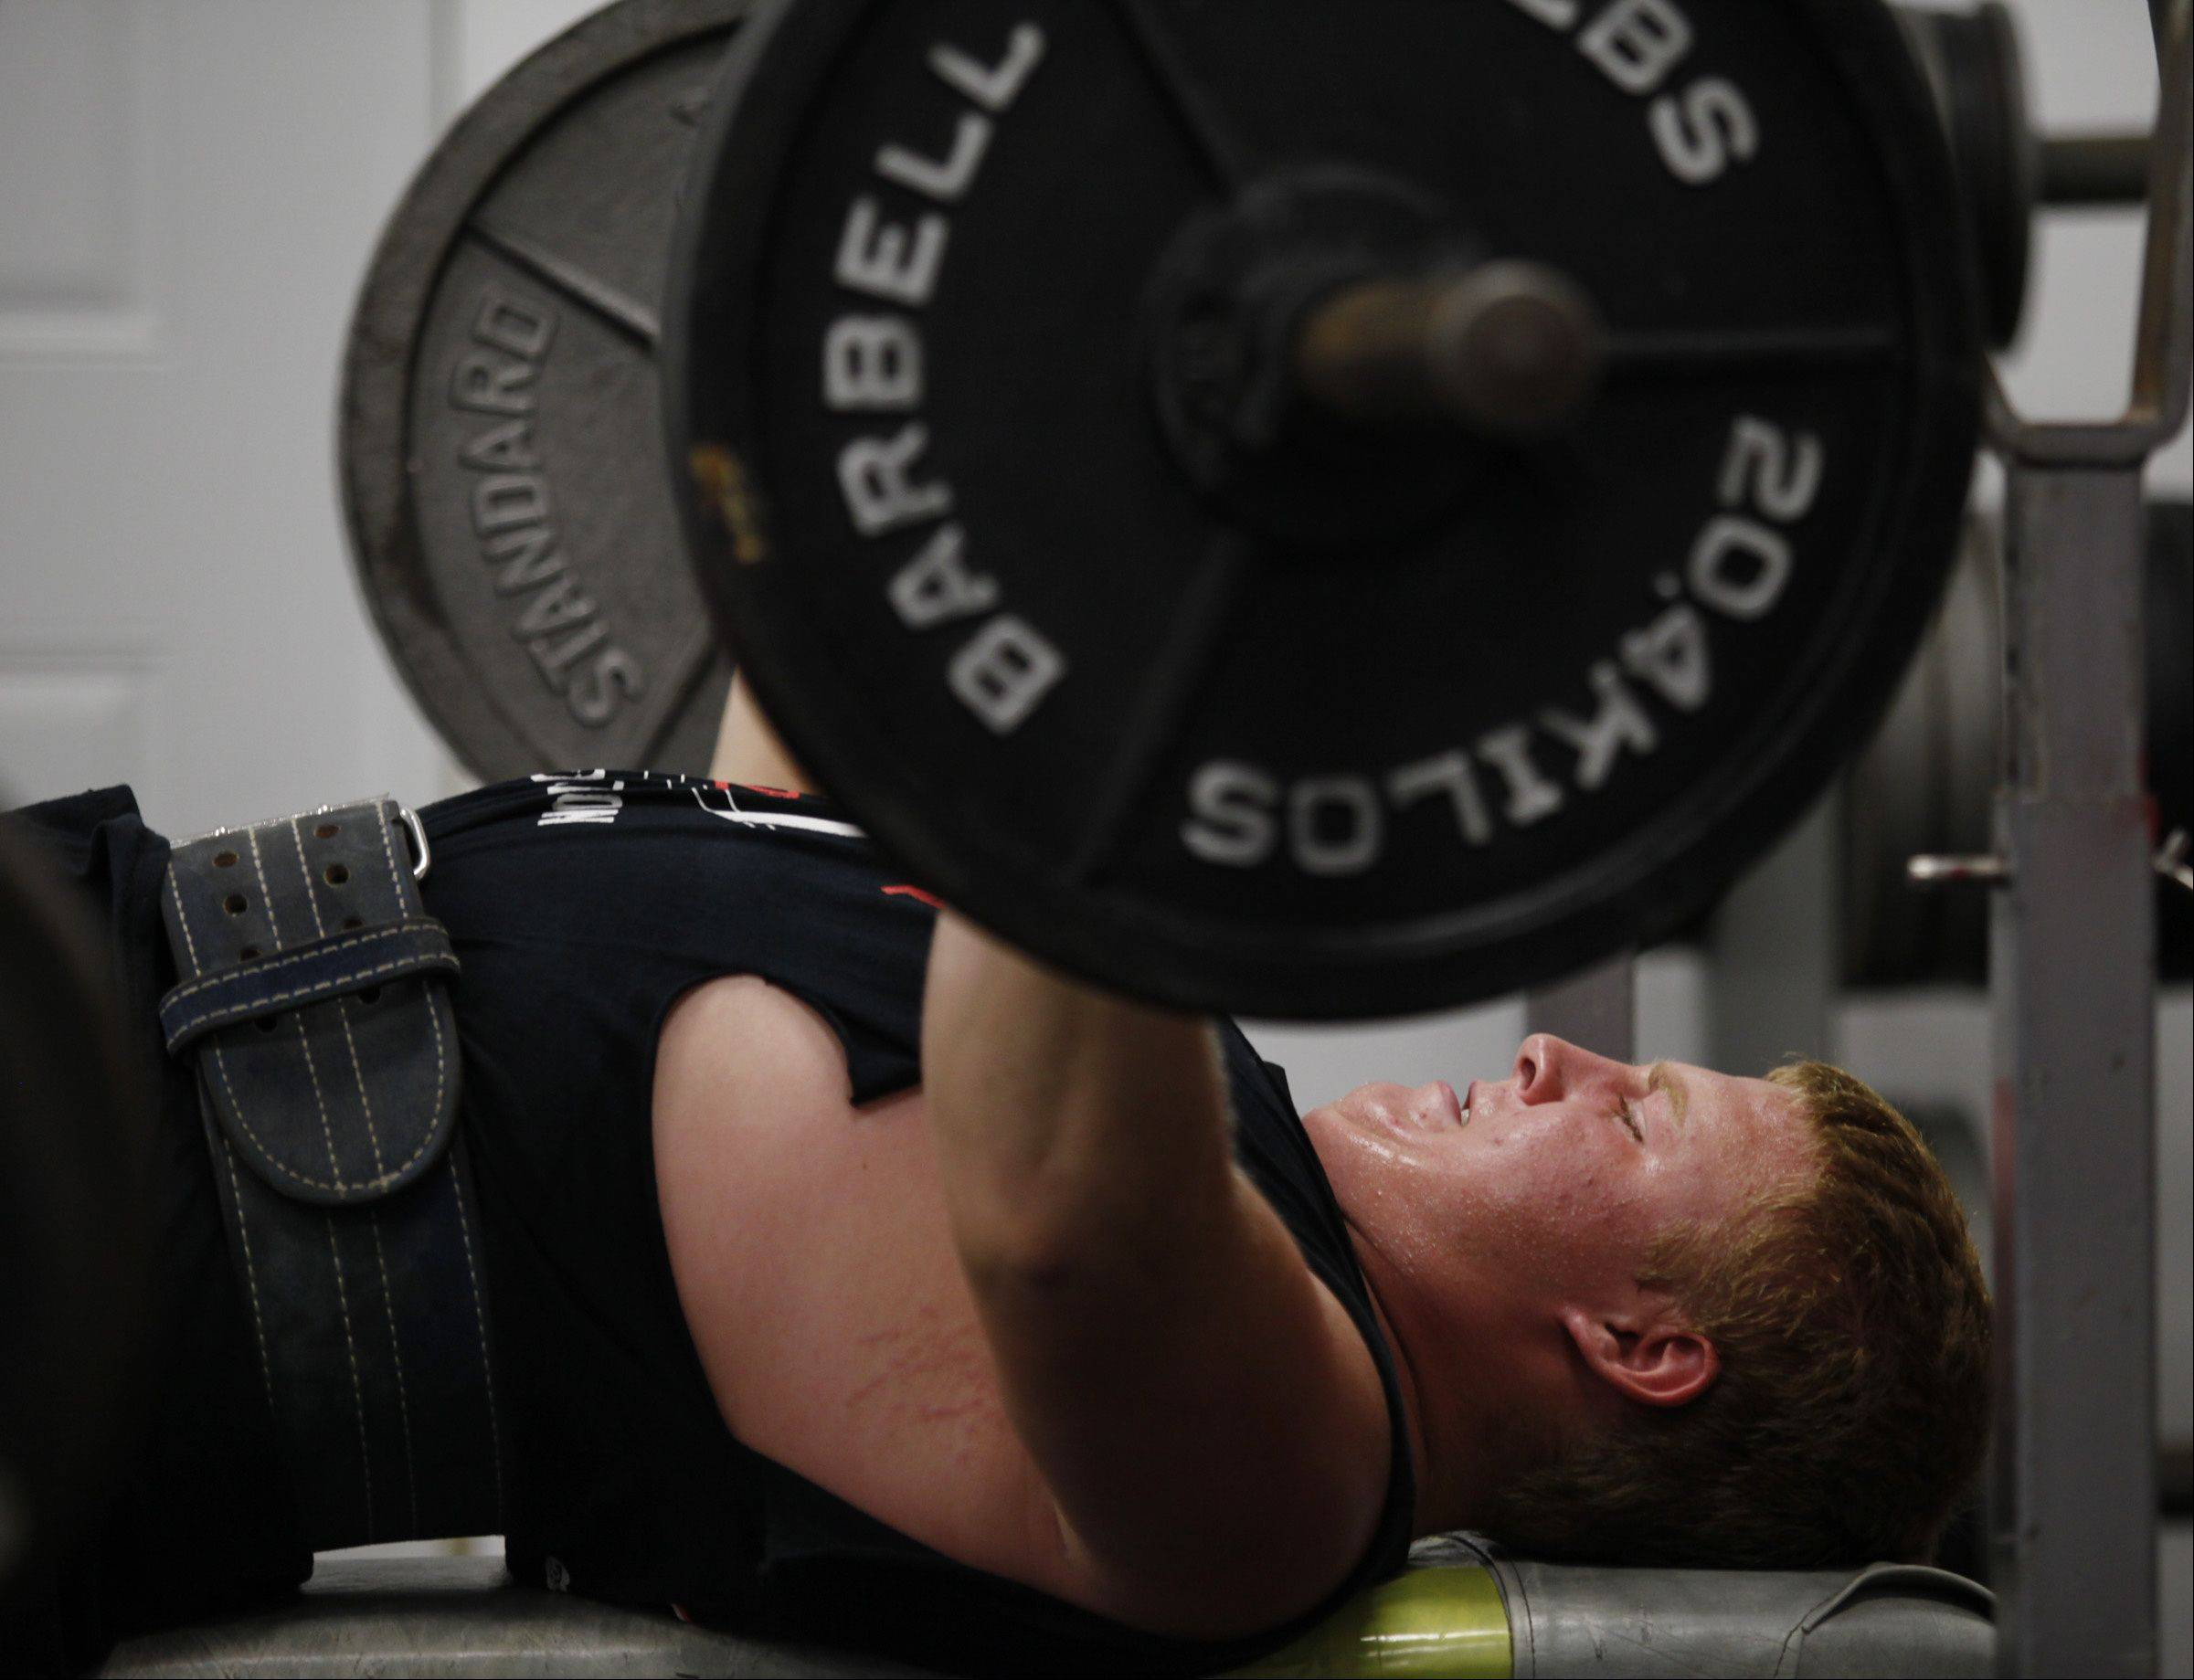 Dominic Swanson, a sophomore at Huntley High School, is heading to Prague in October to compete in a powerlifting competition. Here he bench presses 225 pounds during a workout at his Union home.